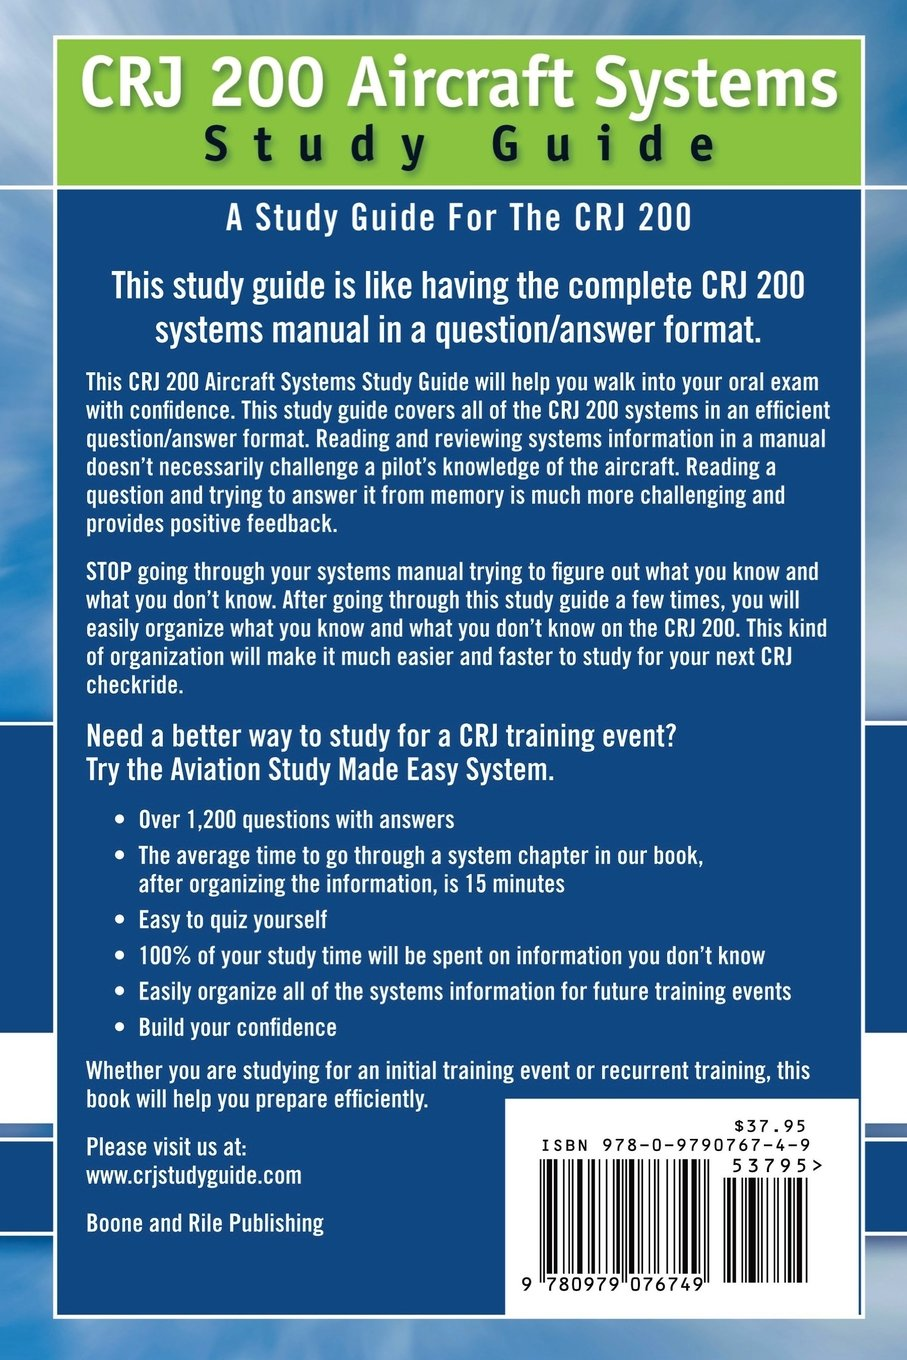 Crj 200 aircraft systems study guide aaron boone 9780979076749 crj 200 aircraft systems study guide aaron boone 9780979076749 amazon books fandeluxe Gallery